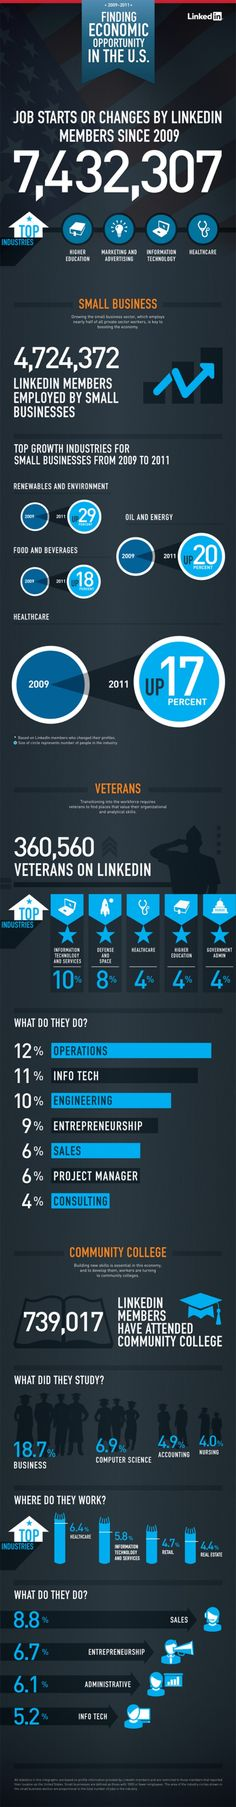 LinkedIn stats and the Job Market    http://mashable.com/2011/09/26/linkedin-data-veterans-community-college-grads-infographic/